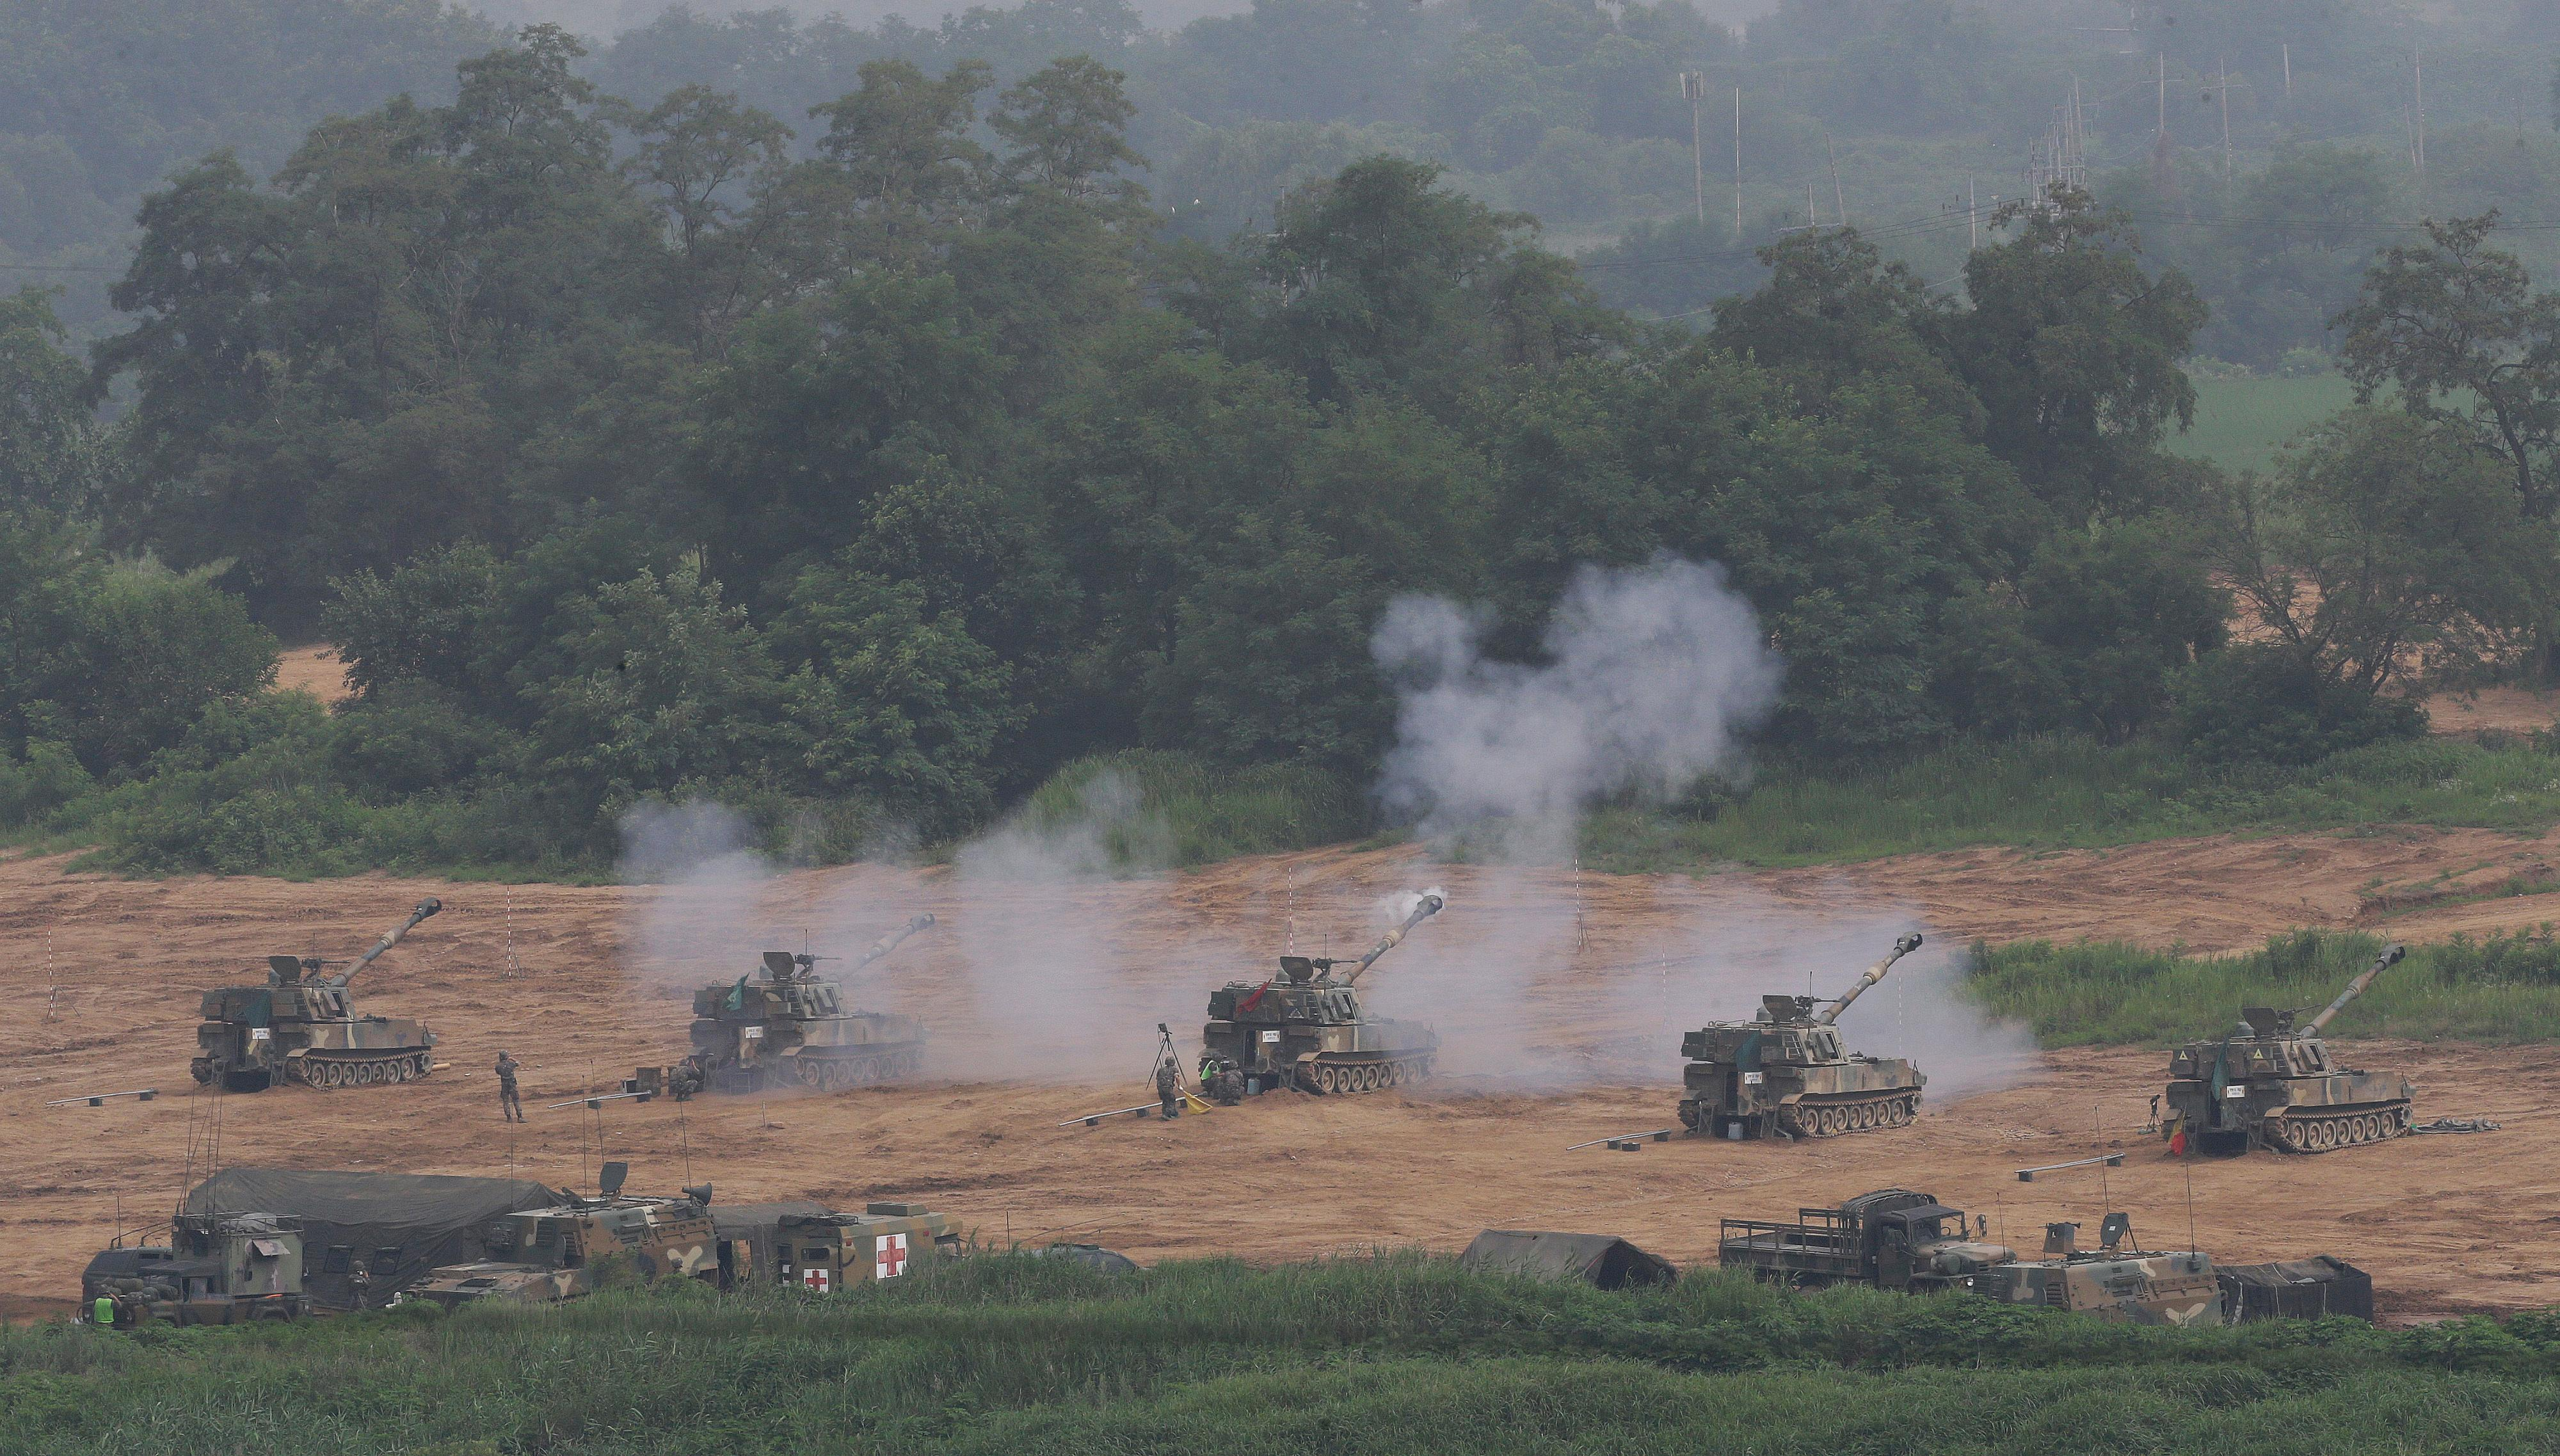 A South Korean army K-9 self-propelled howitzer fires during the annual exercise in Paju, South Korea near the border with North Korea, Wednesday, July 5, 2017. (AP Photo/Ahn Young-joon)